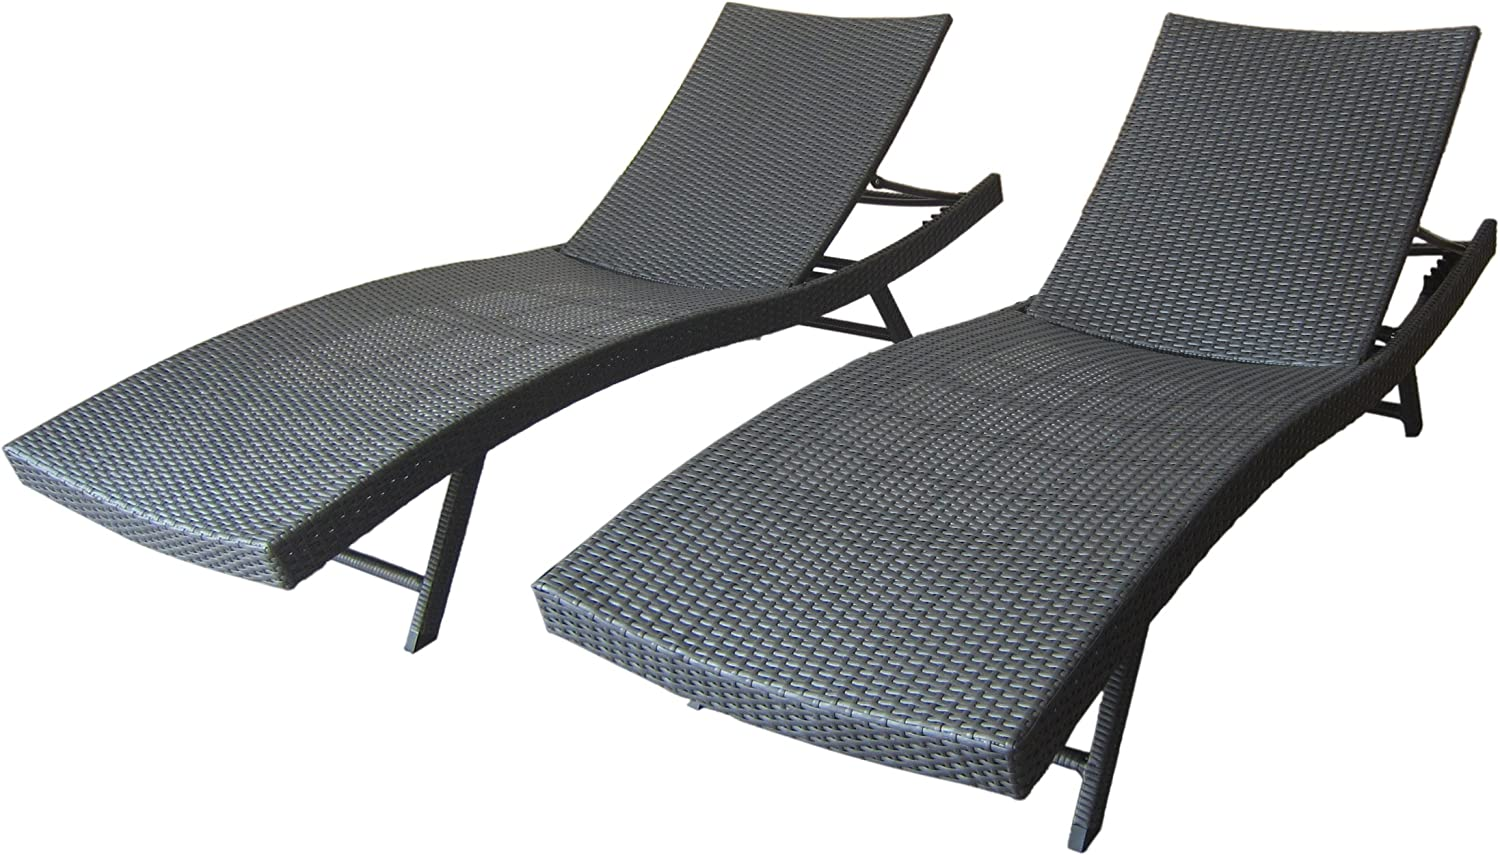 Christopher Knight Home 304606 Arthur   Outdoor Wicker Chaise Lounges   Set of 2   in Grey